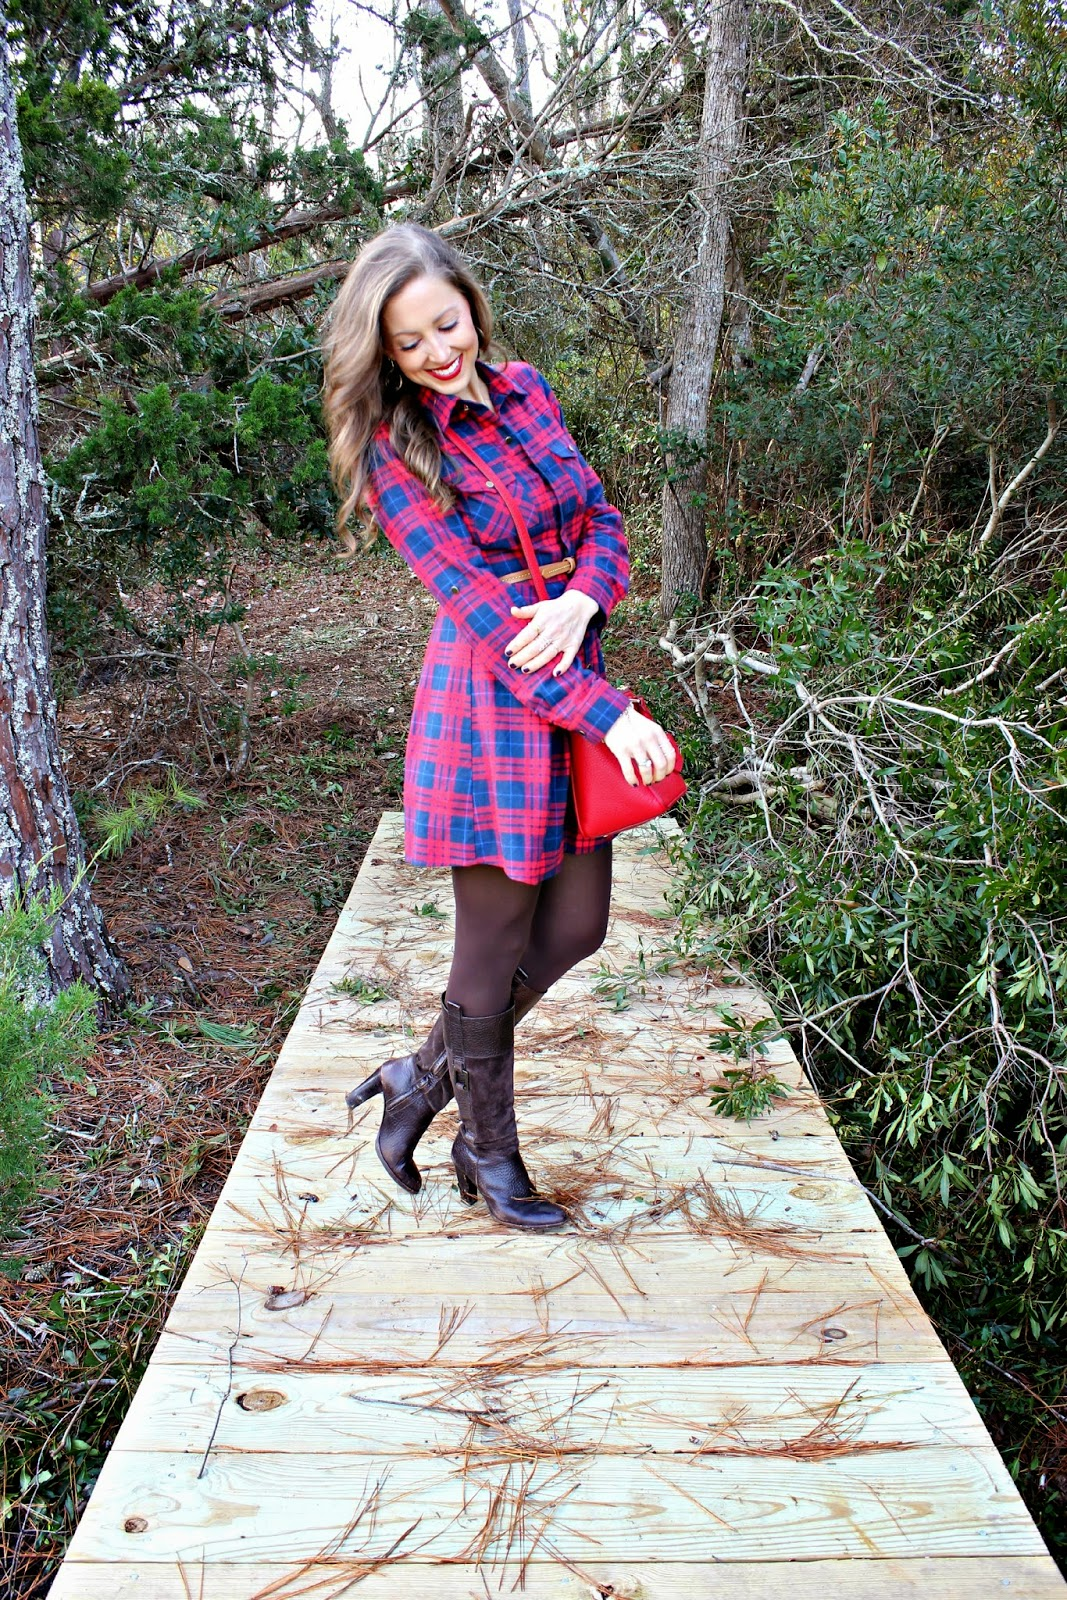 Plaid Dress Saltwater And Stilettos Tory Burch Ronbinson Pebbled Mini Square Brina Box Obsessed With This One Too Robinson Tote Purse Banana Republic Boots Old Similar Stella Dot